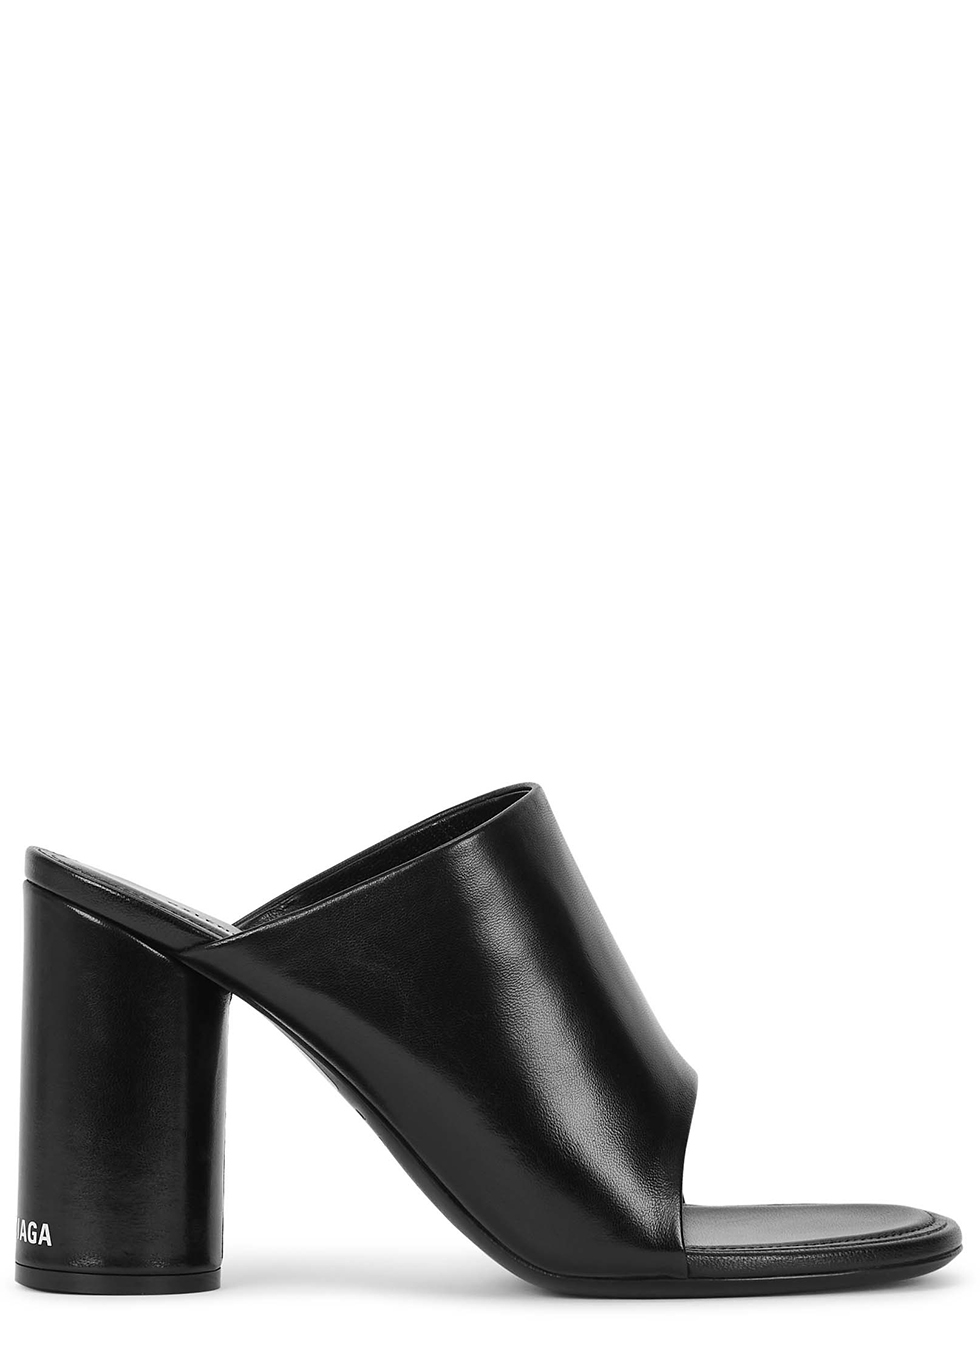 Oval 90 black leather mules